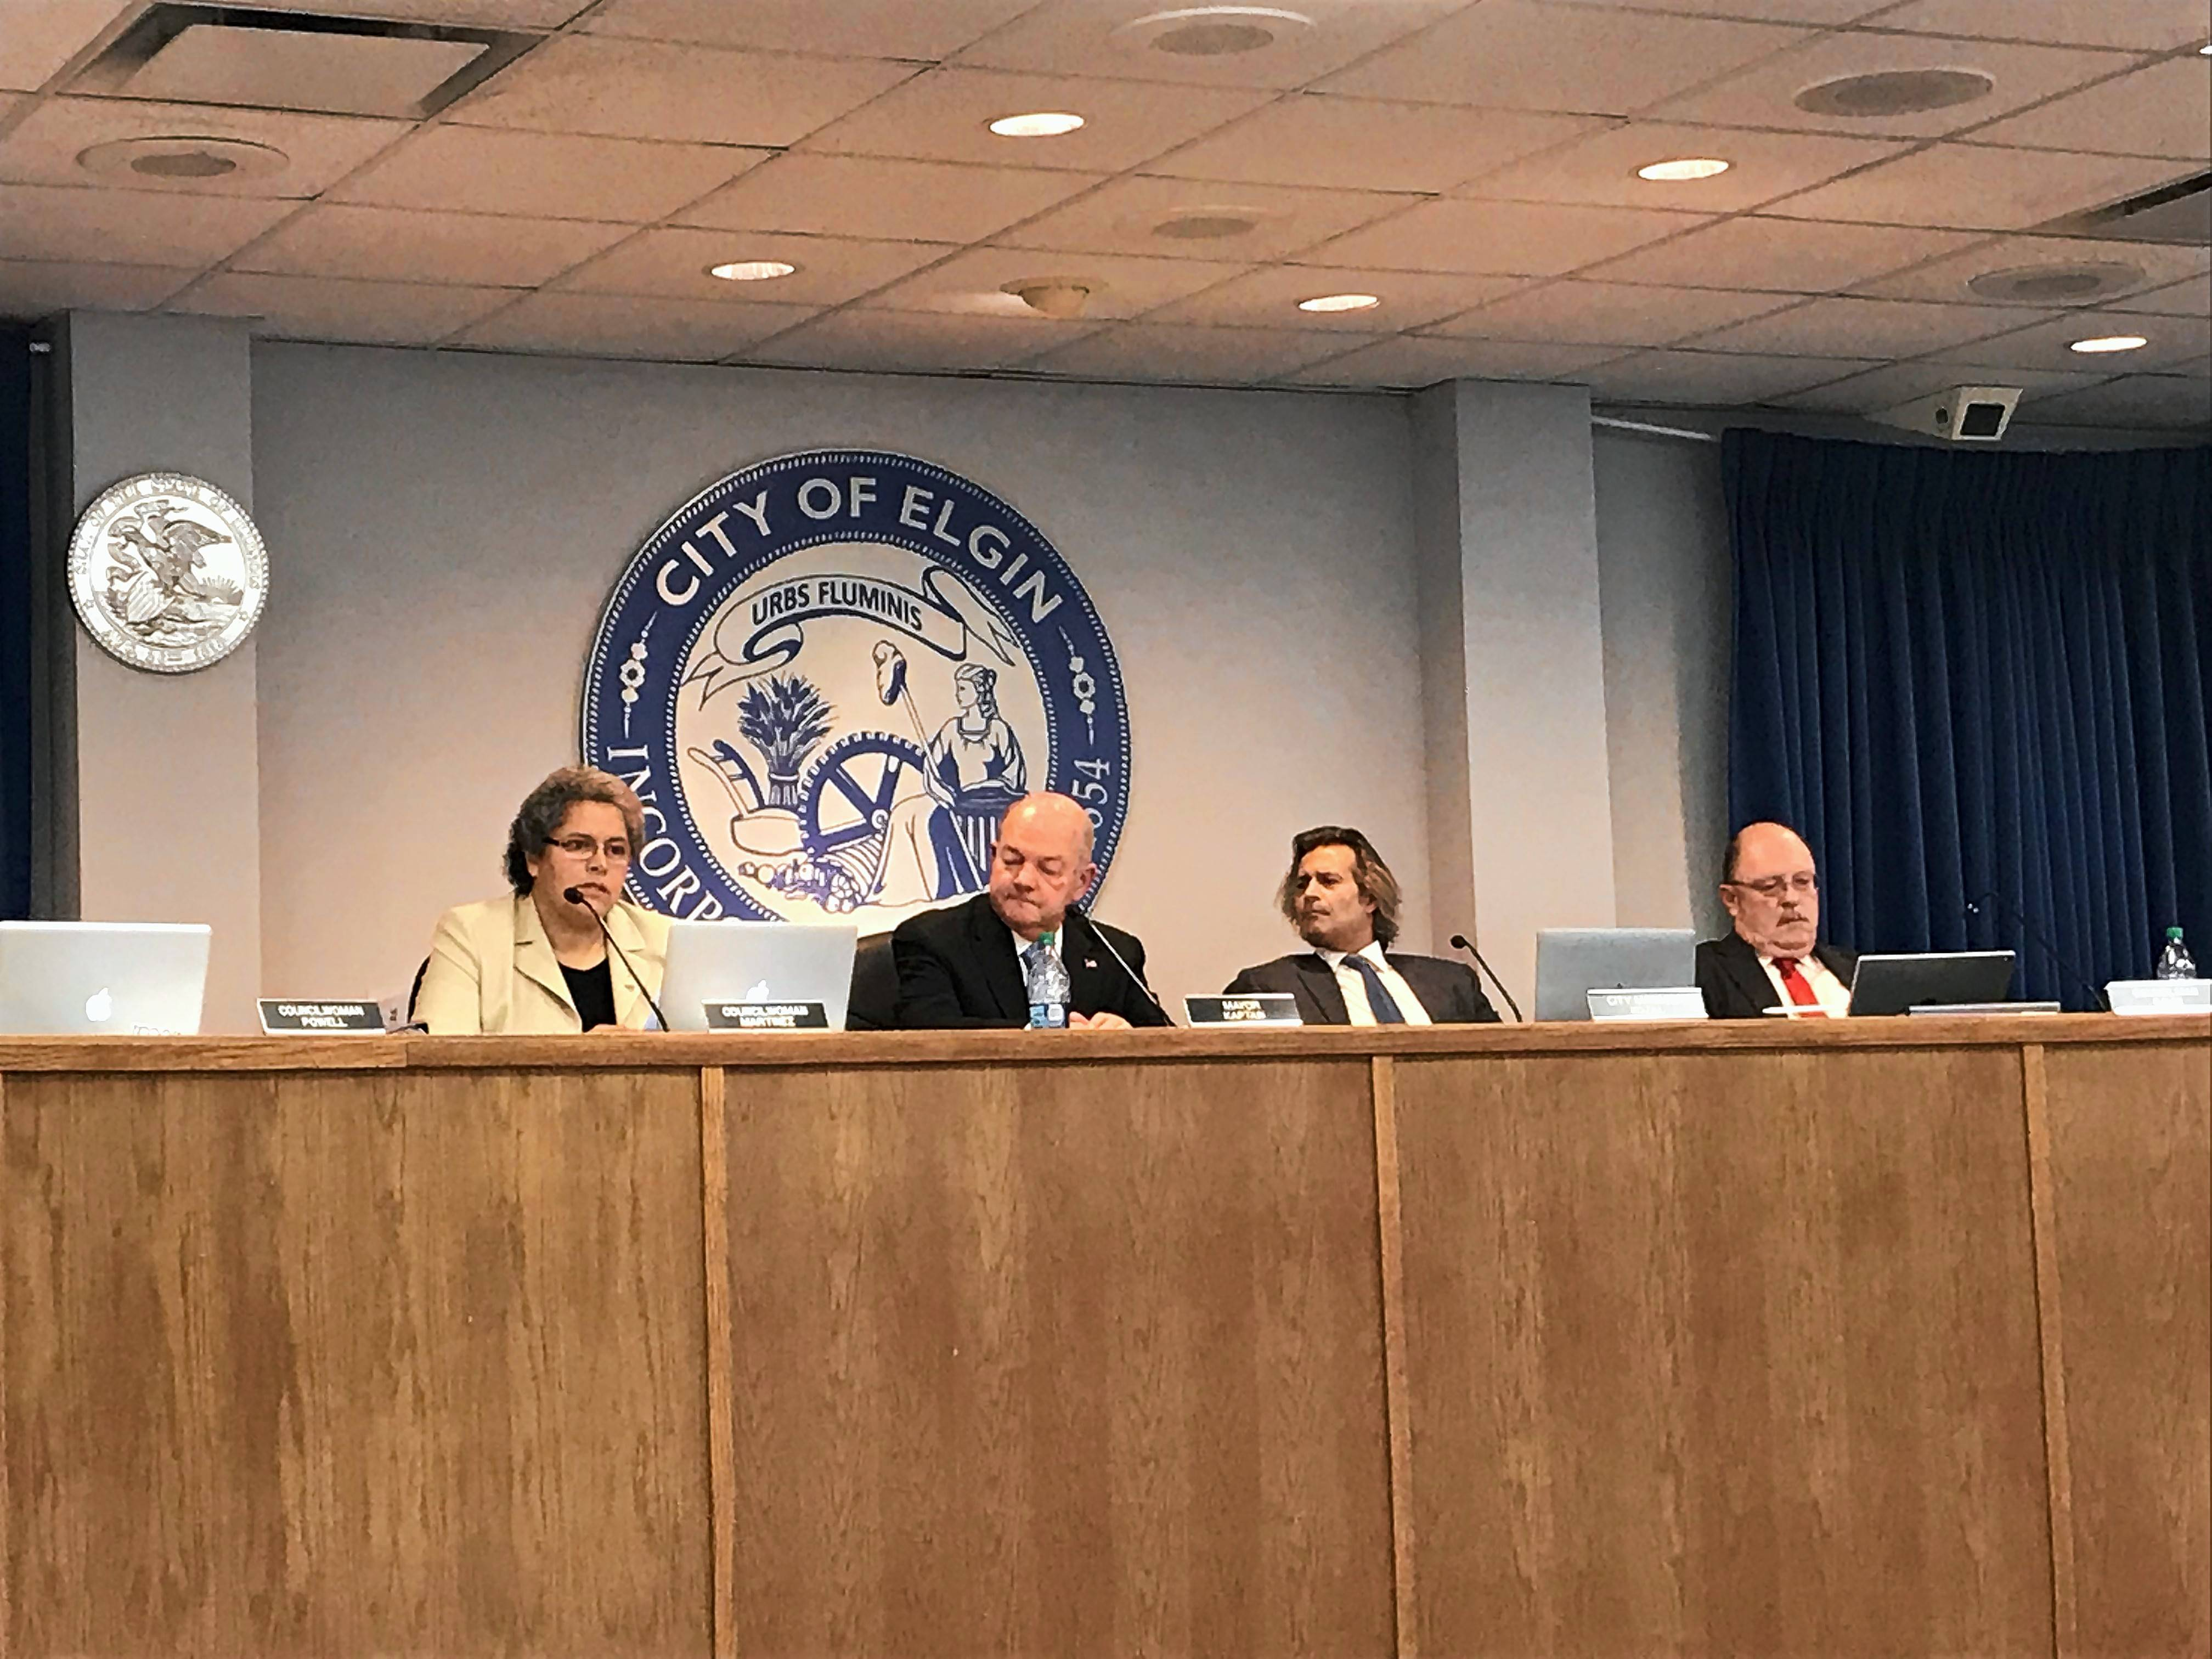 Prompted by large crowds after police shooting, Elgin mayor to enforce time limit on public comments